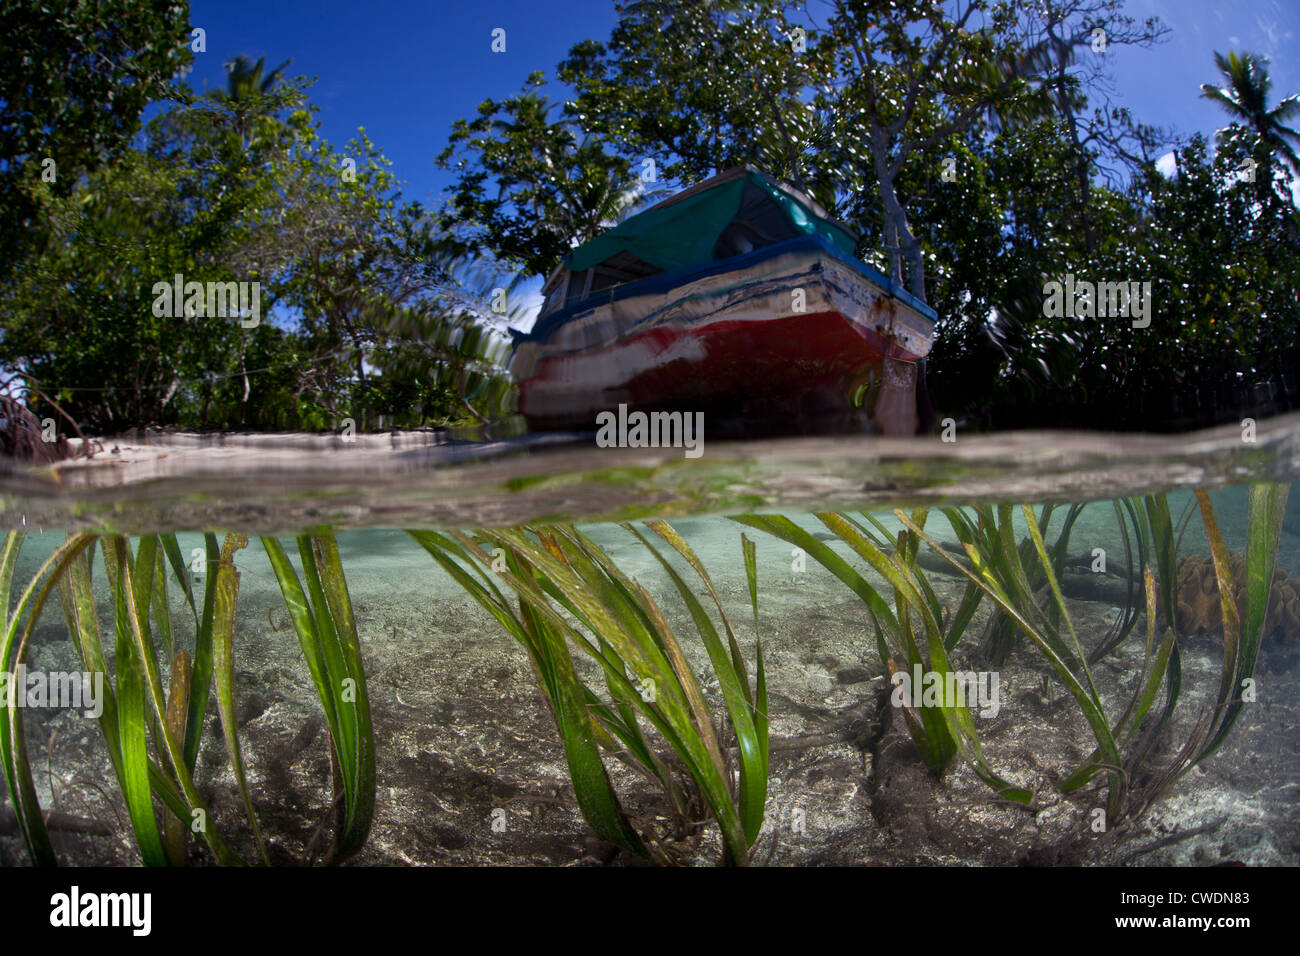 Seagrass, Enhalus acaroides, grows close to the edge of a beach and mangrove forest where a ship has been beached. - Stock Image